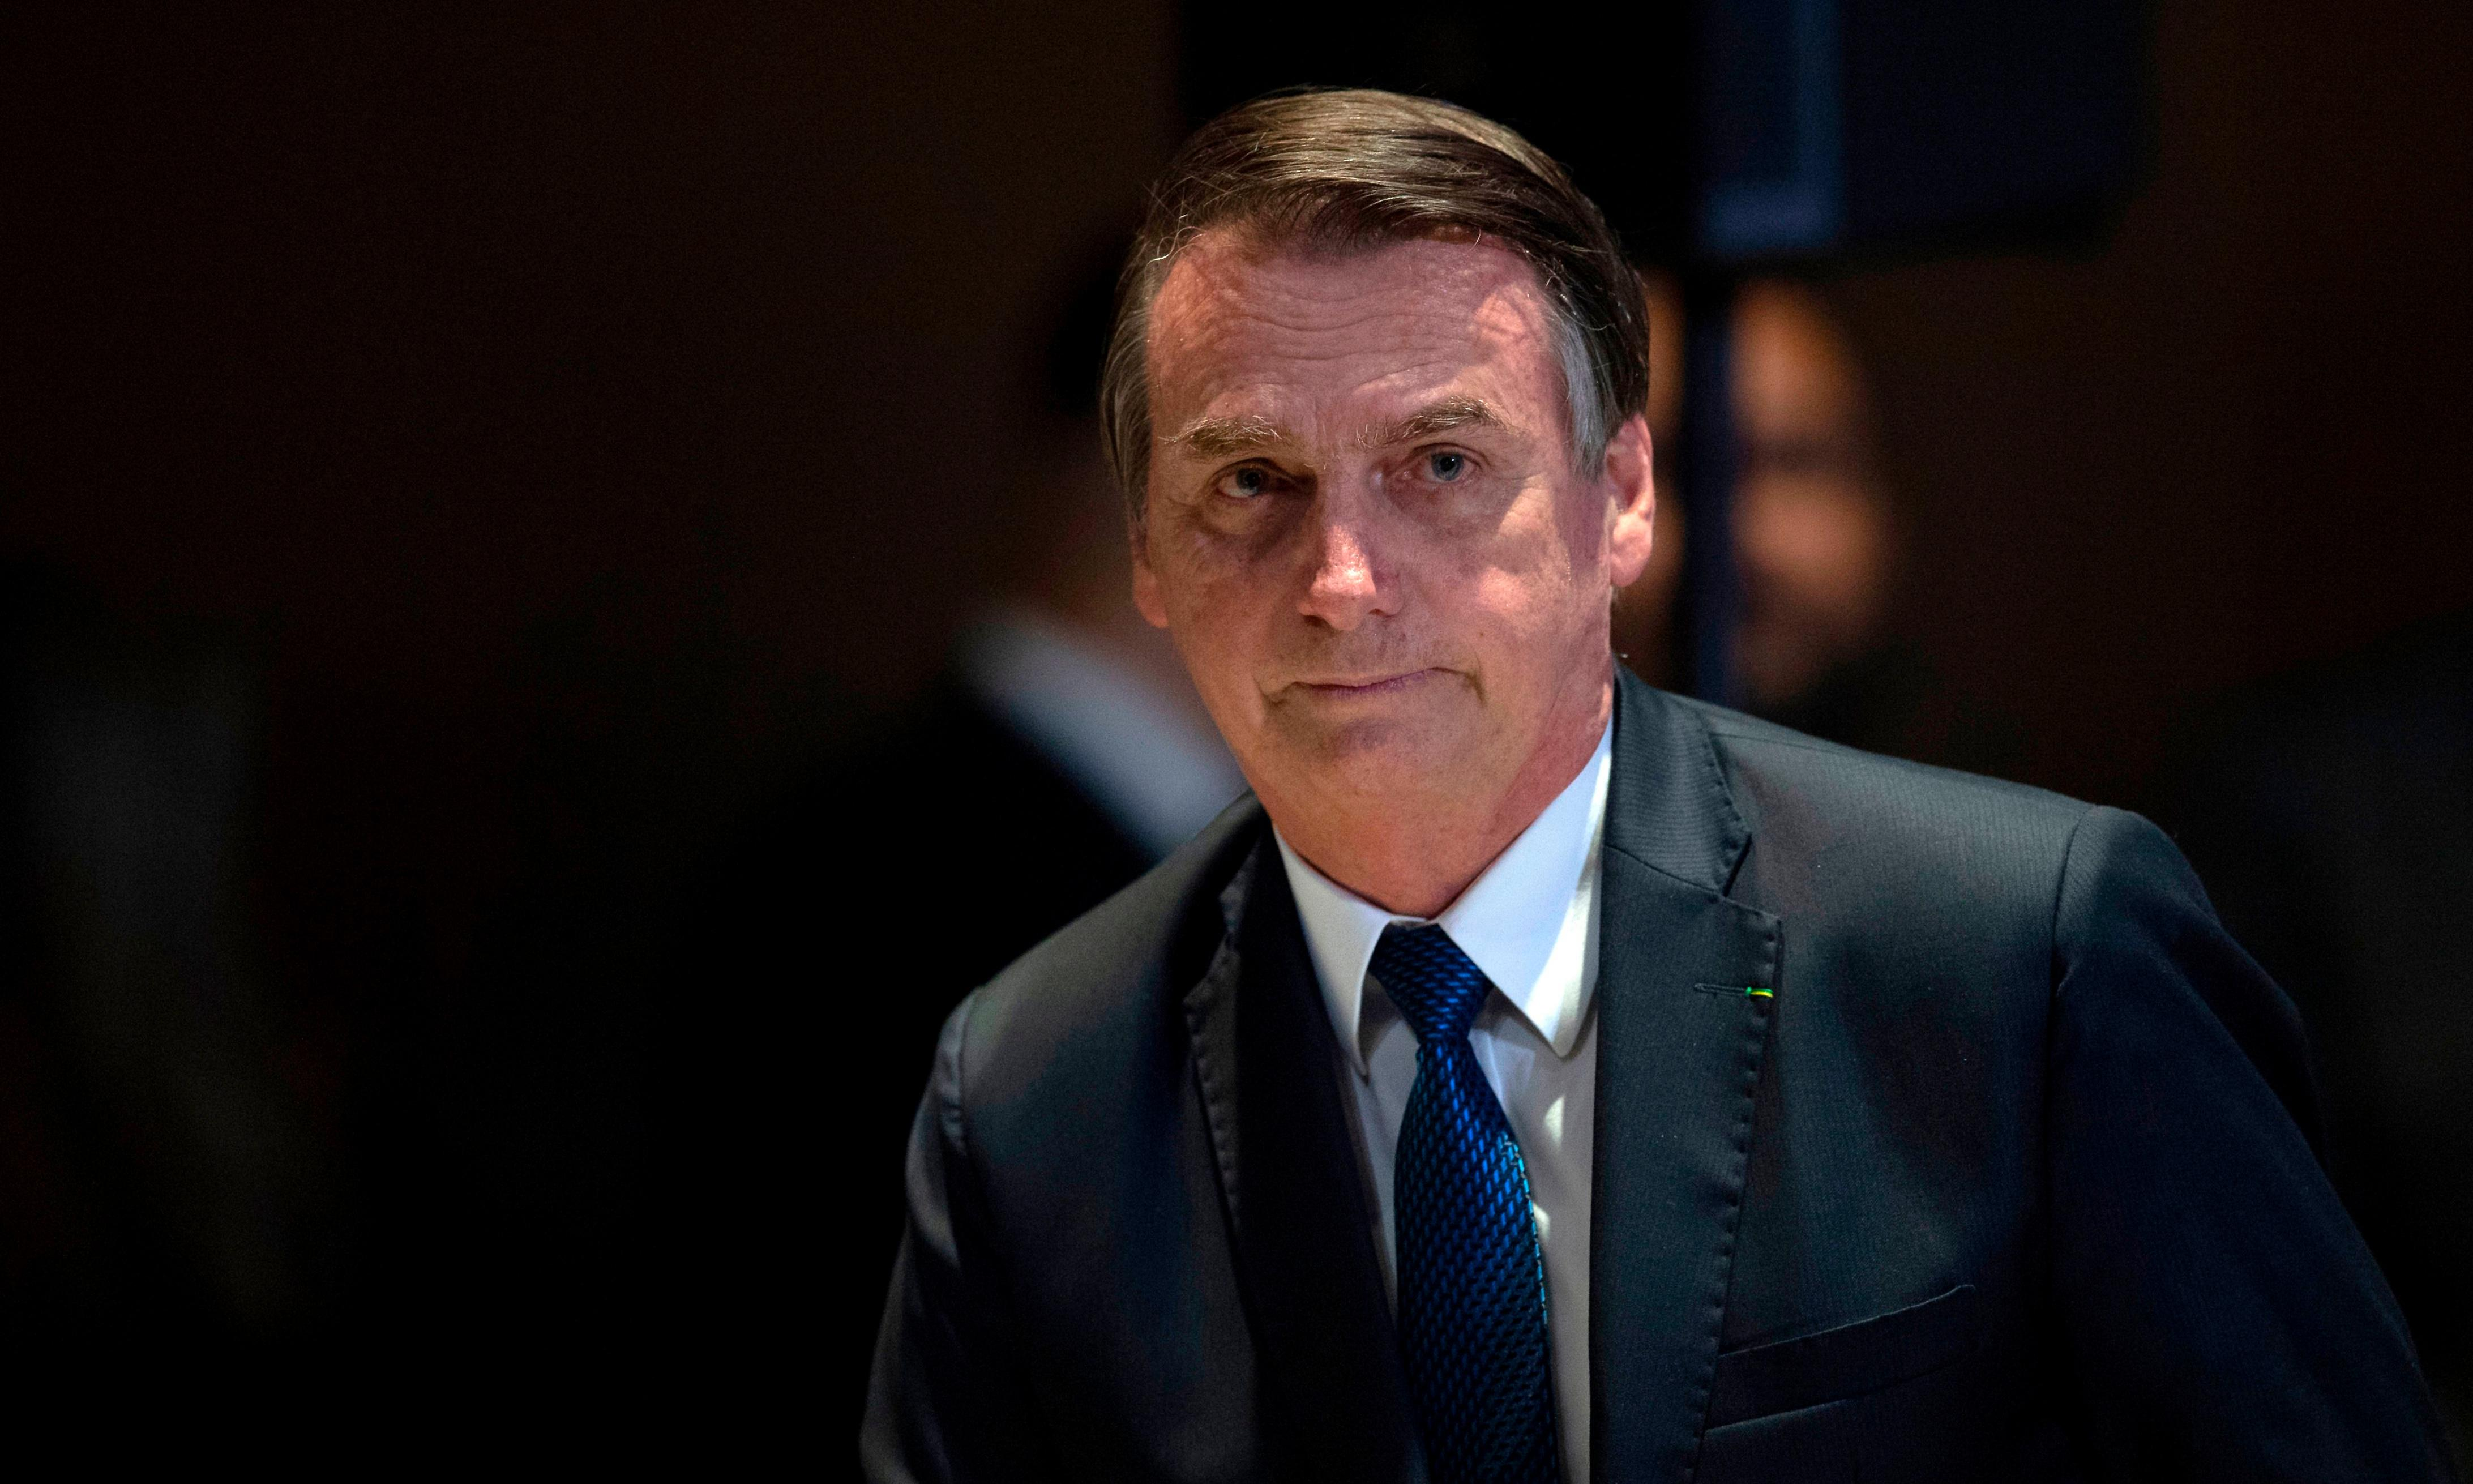 US museum of natural history will not host Bolsonaro gala event after outrage